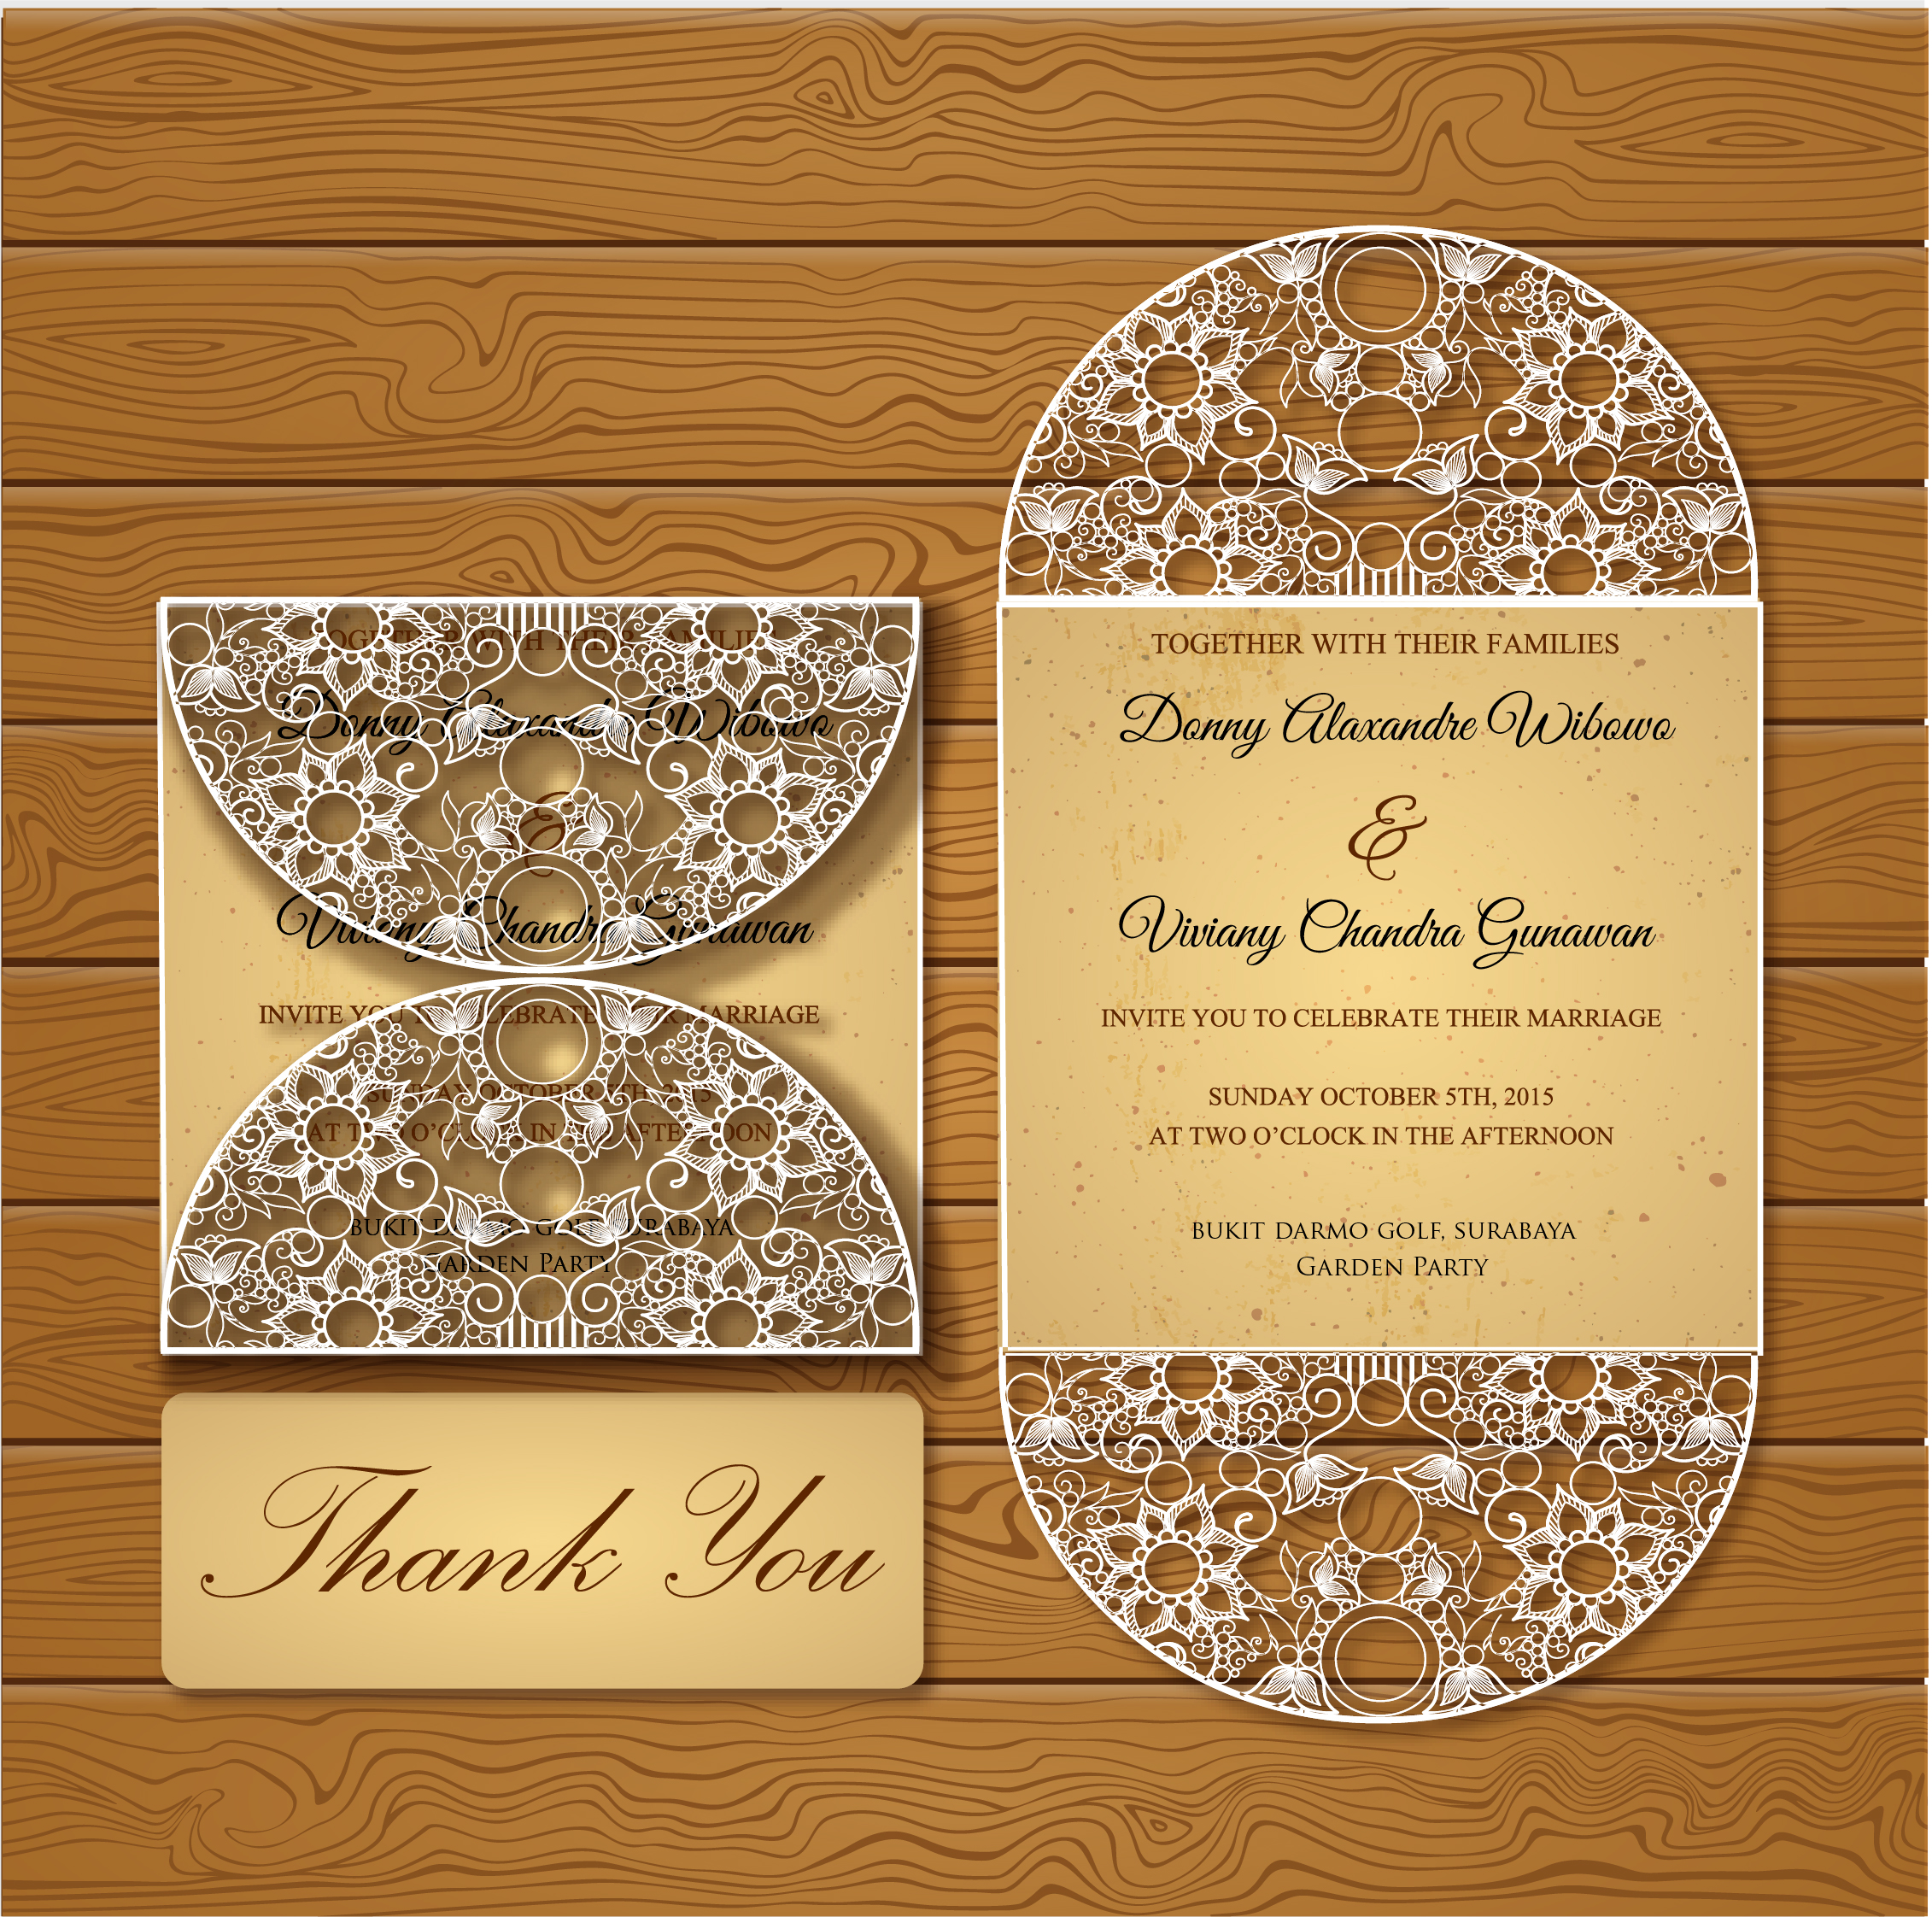 Agape card wedding invitations in surabaya bridestory stopboris Gallery